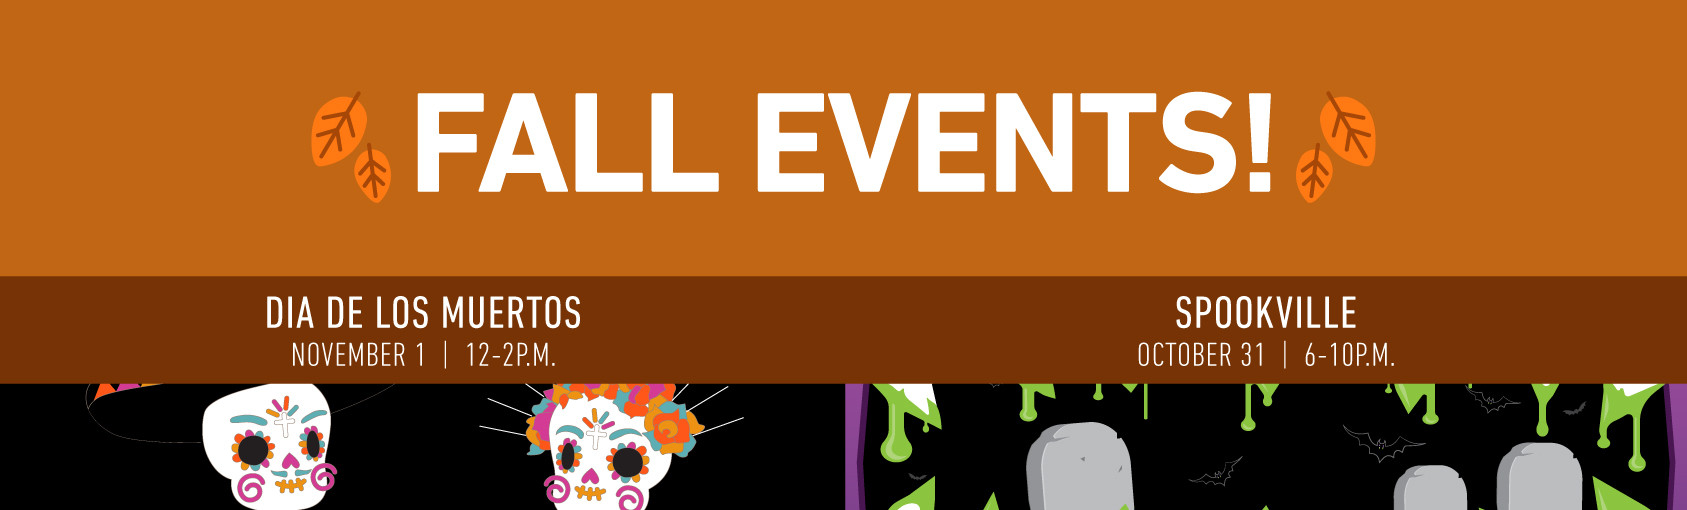 Fall Events banner